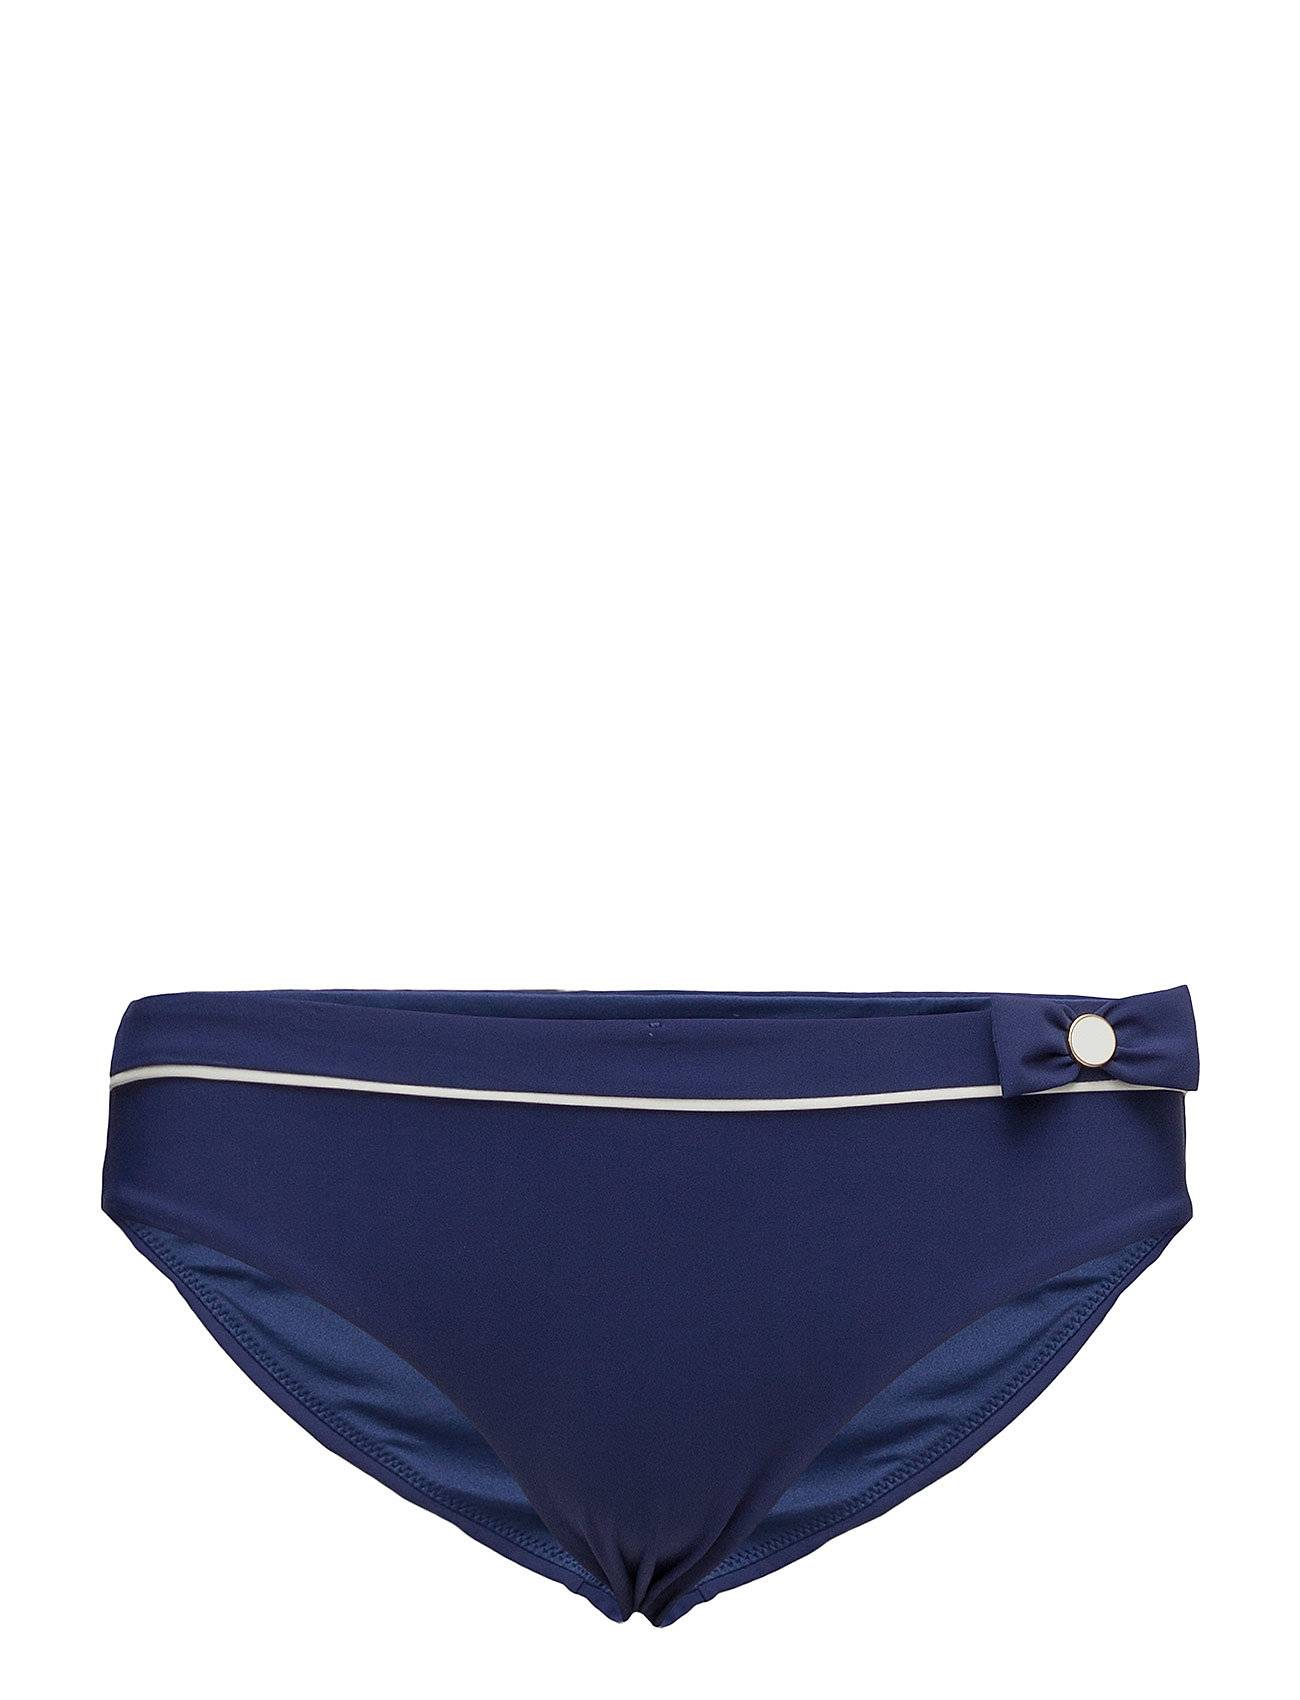 Femilet Coco - Tai Brief